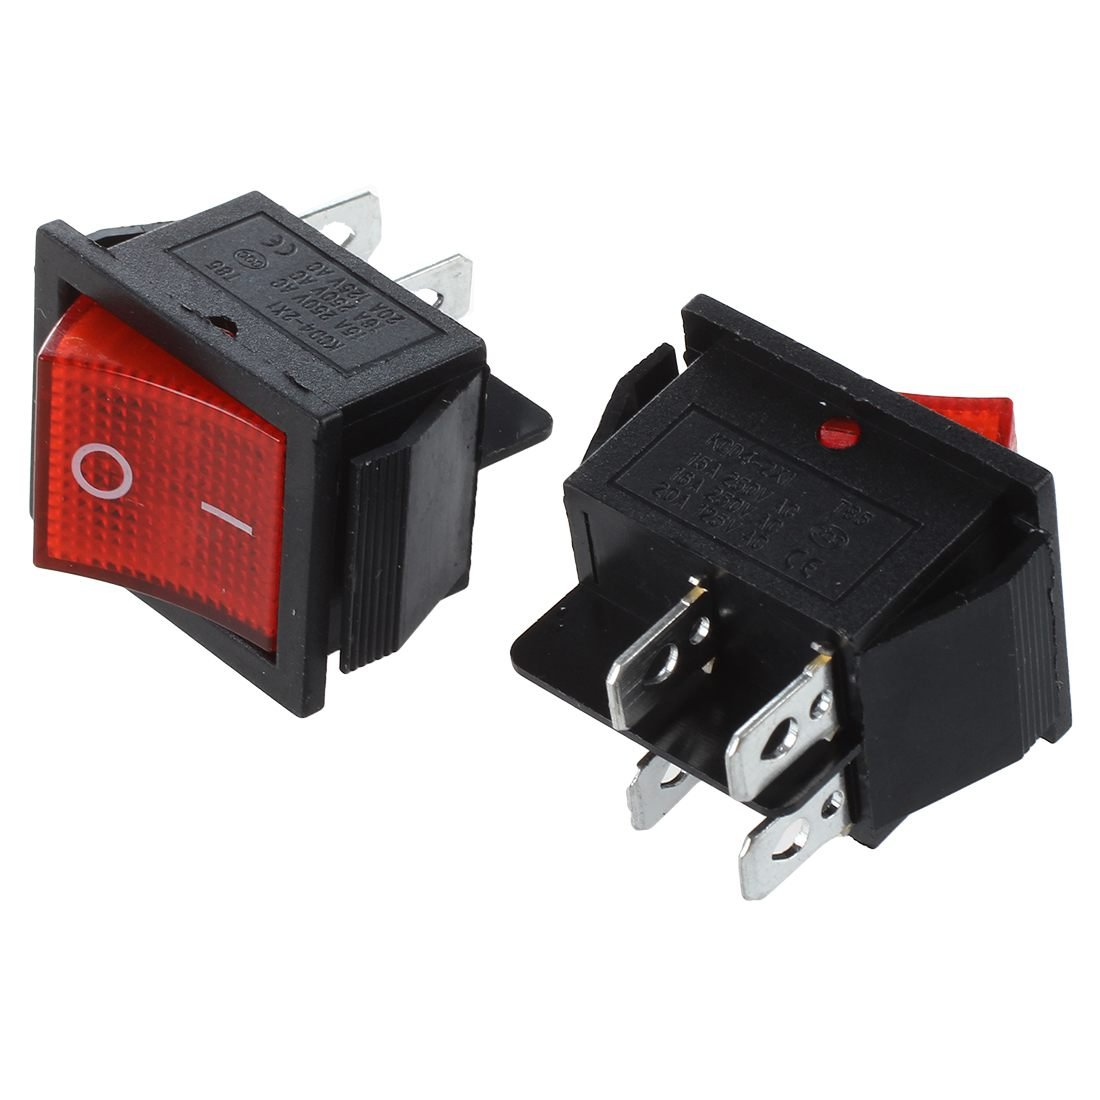 TOOGOO(R) 16A/250V 20A/125V AC Red Neon Light ON/OFF DPST Boat Rocker Switch 5 Pcs by TOOGOO(R) (Image #2)